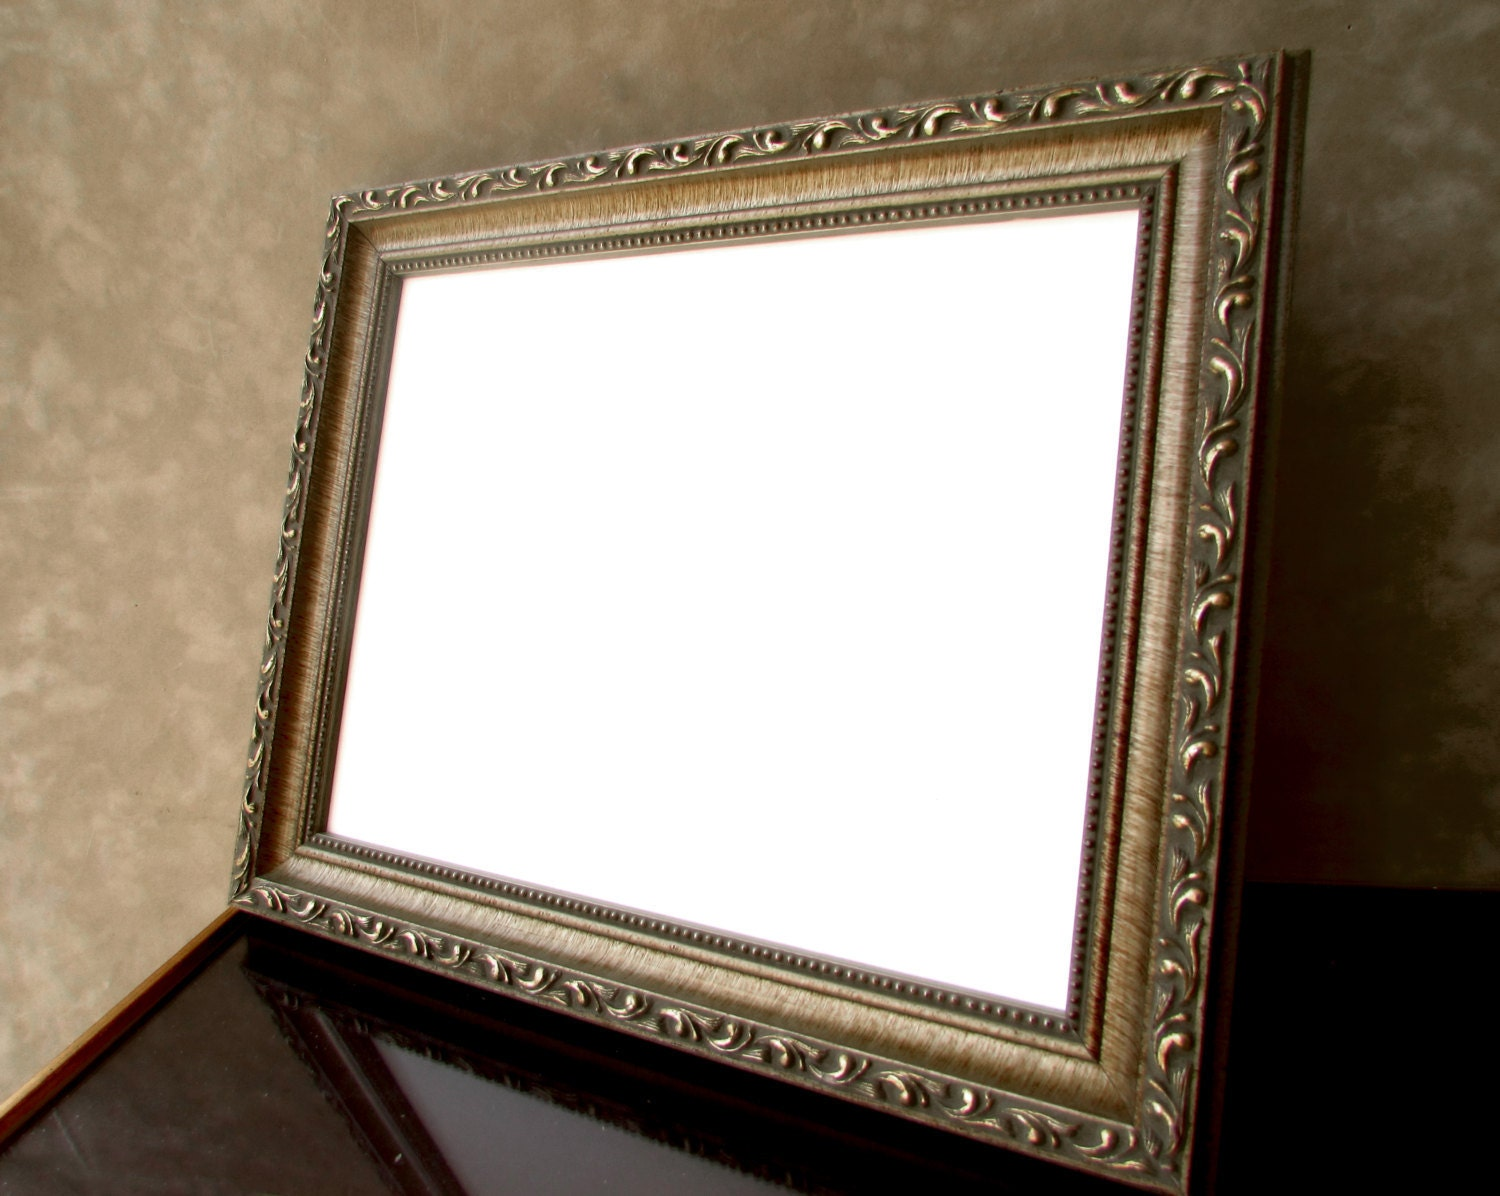 8x10 Photo Frame Antique Silver Frame Silver by CiracoFramers